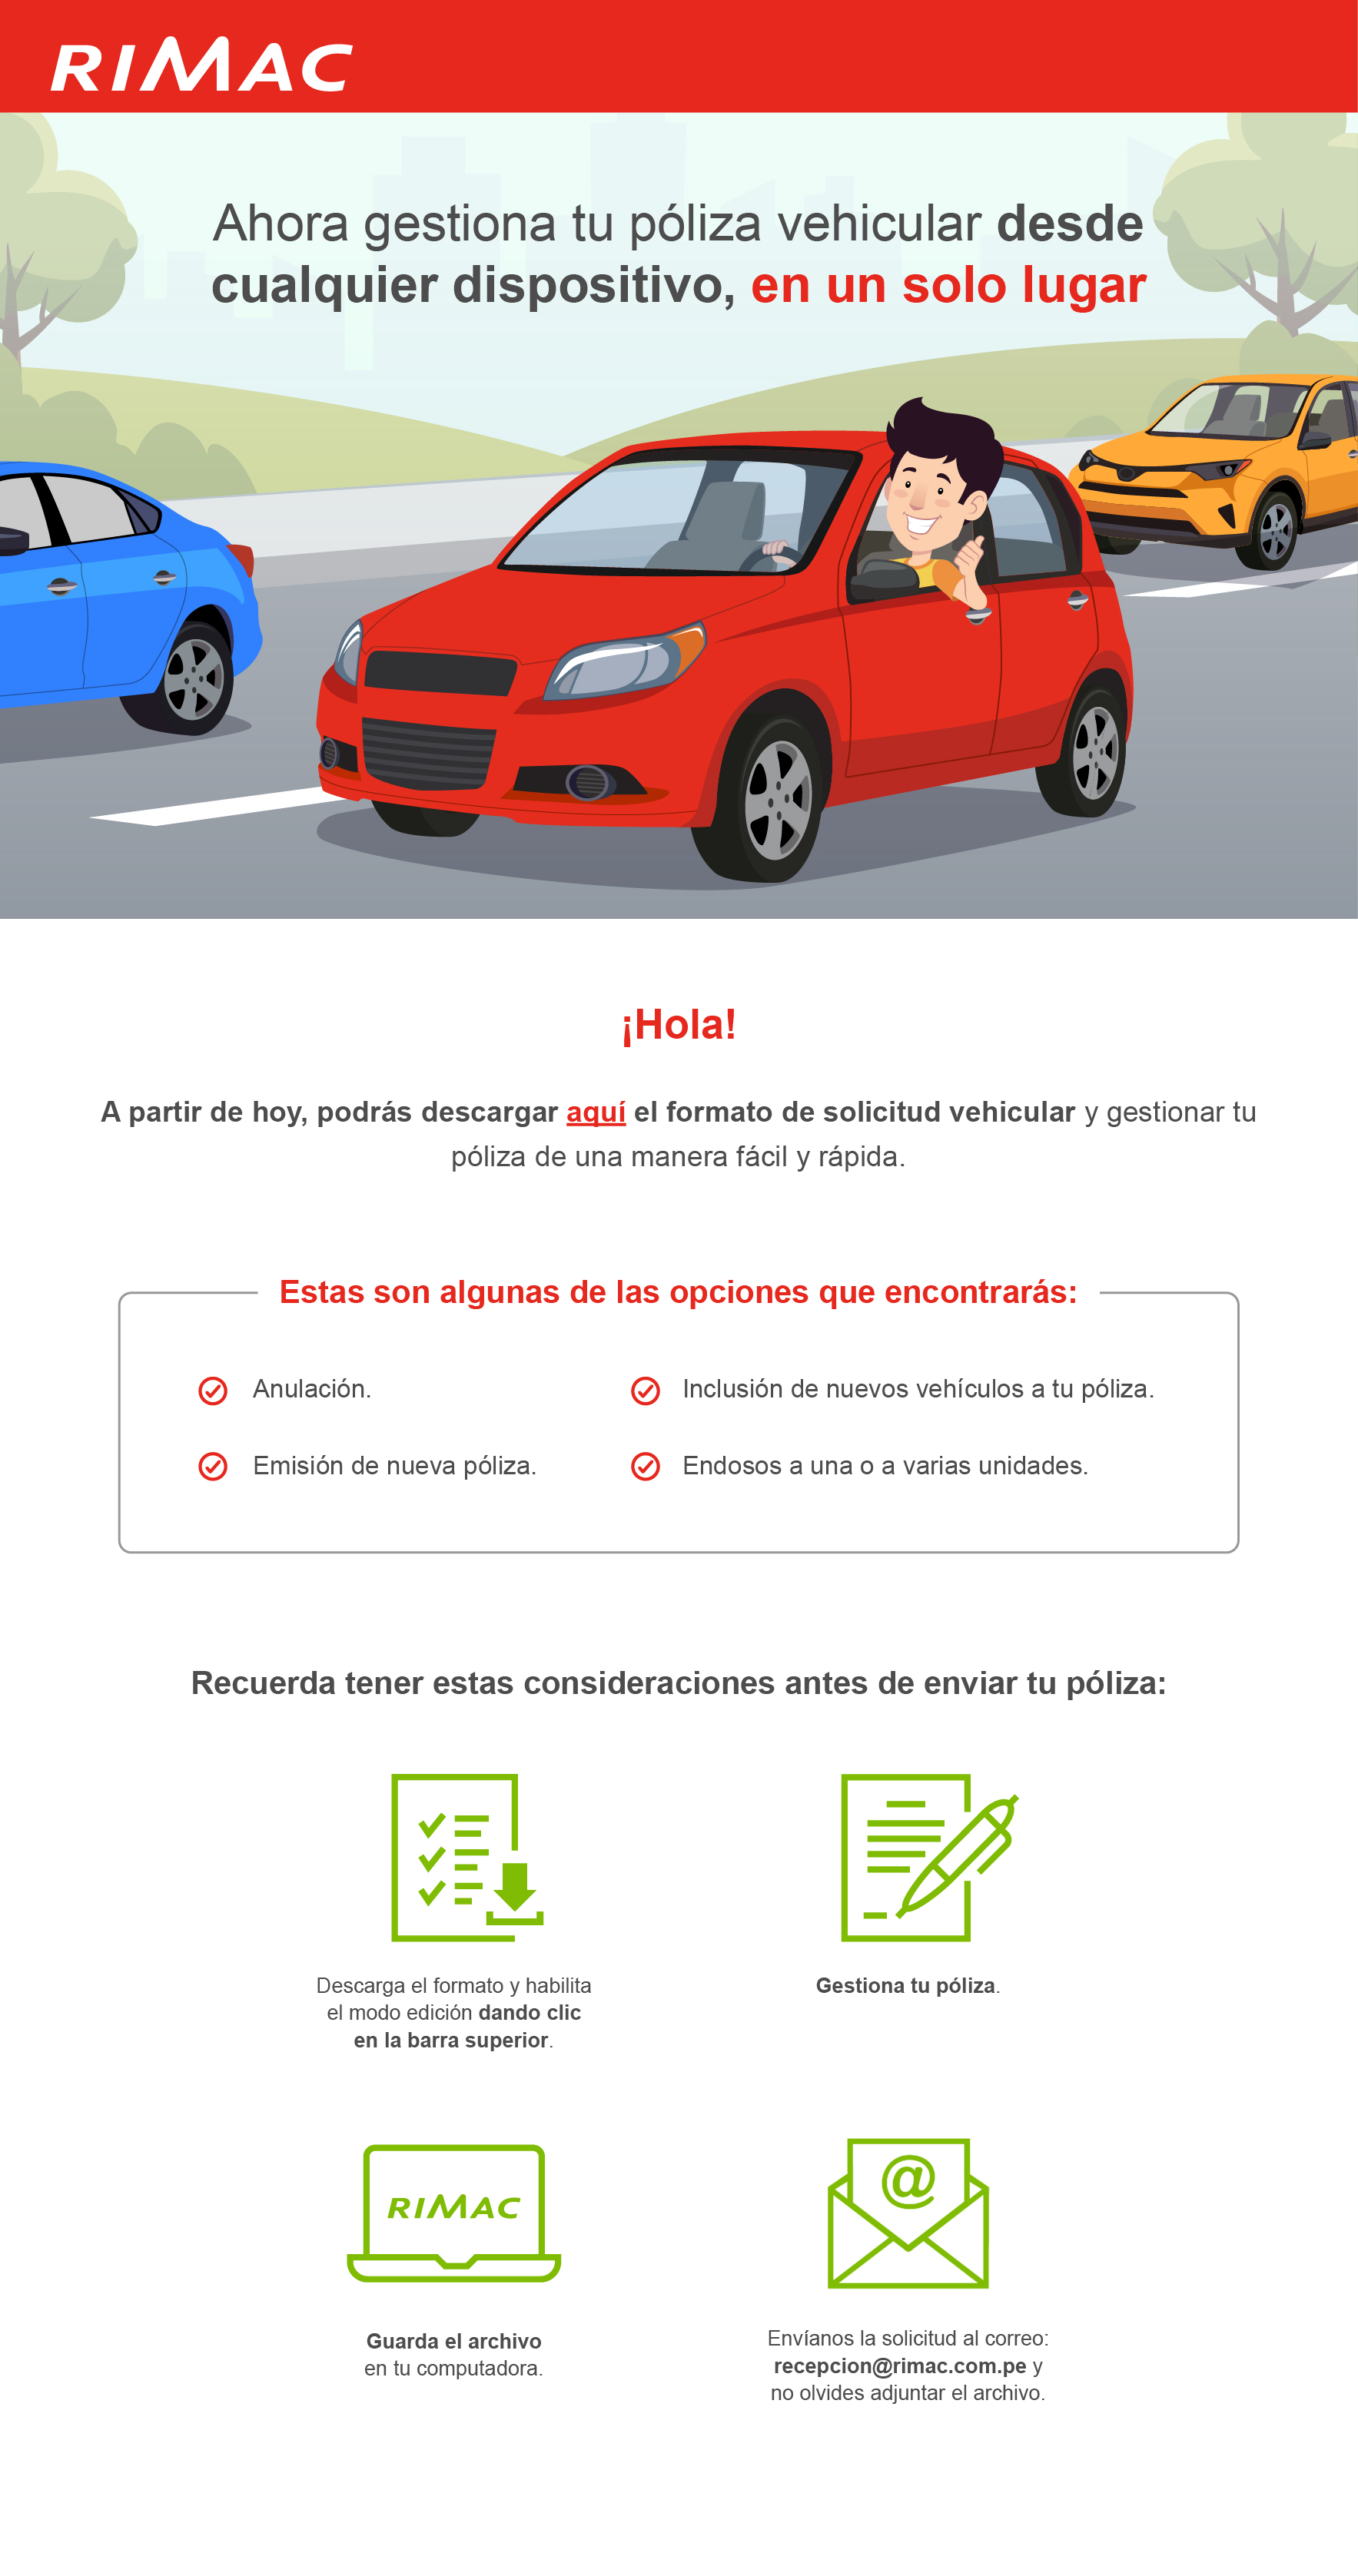 Solicitud vehicular